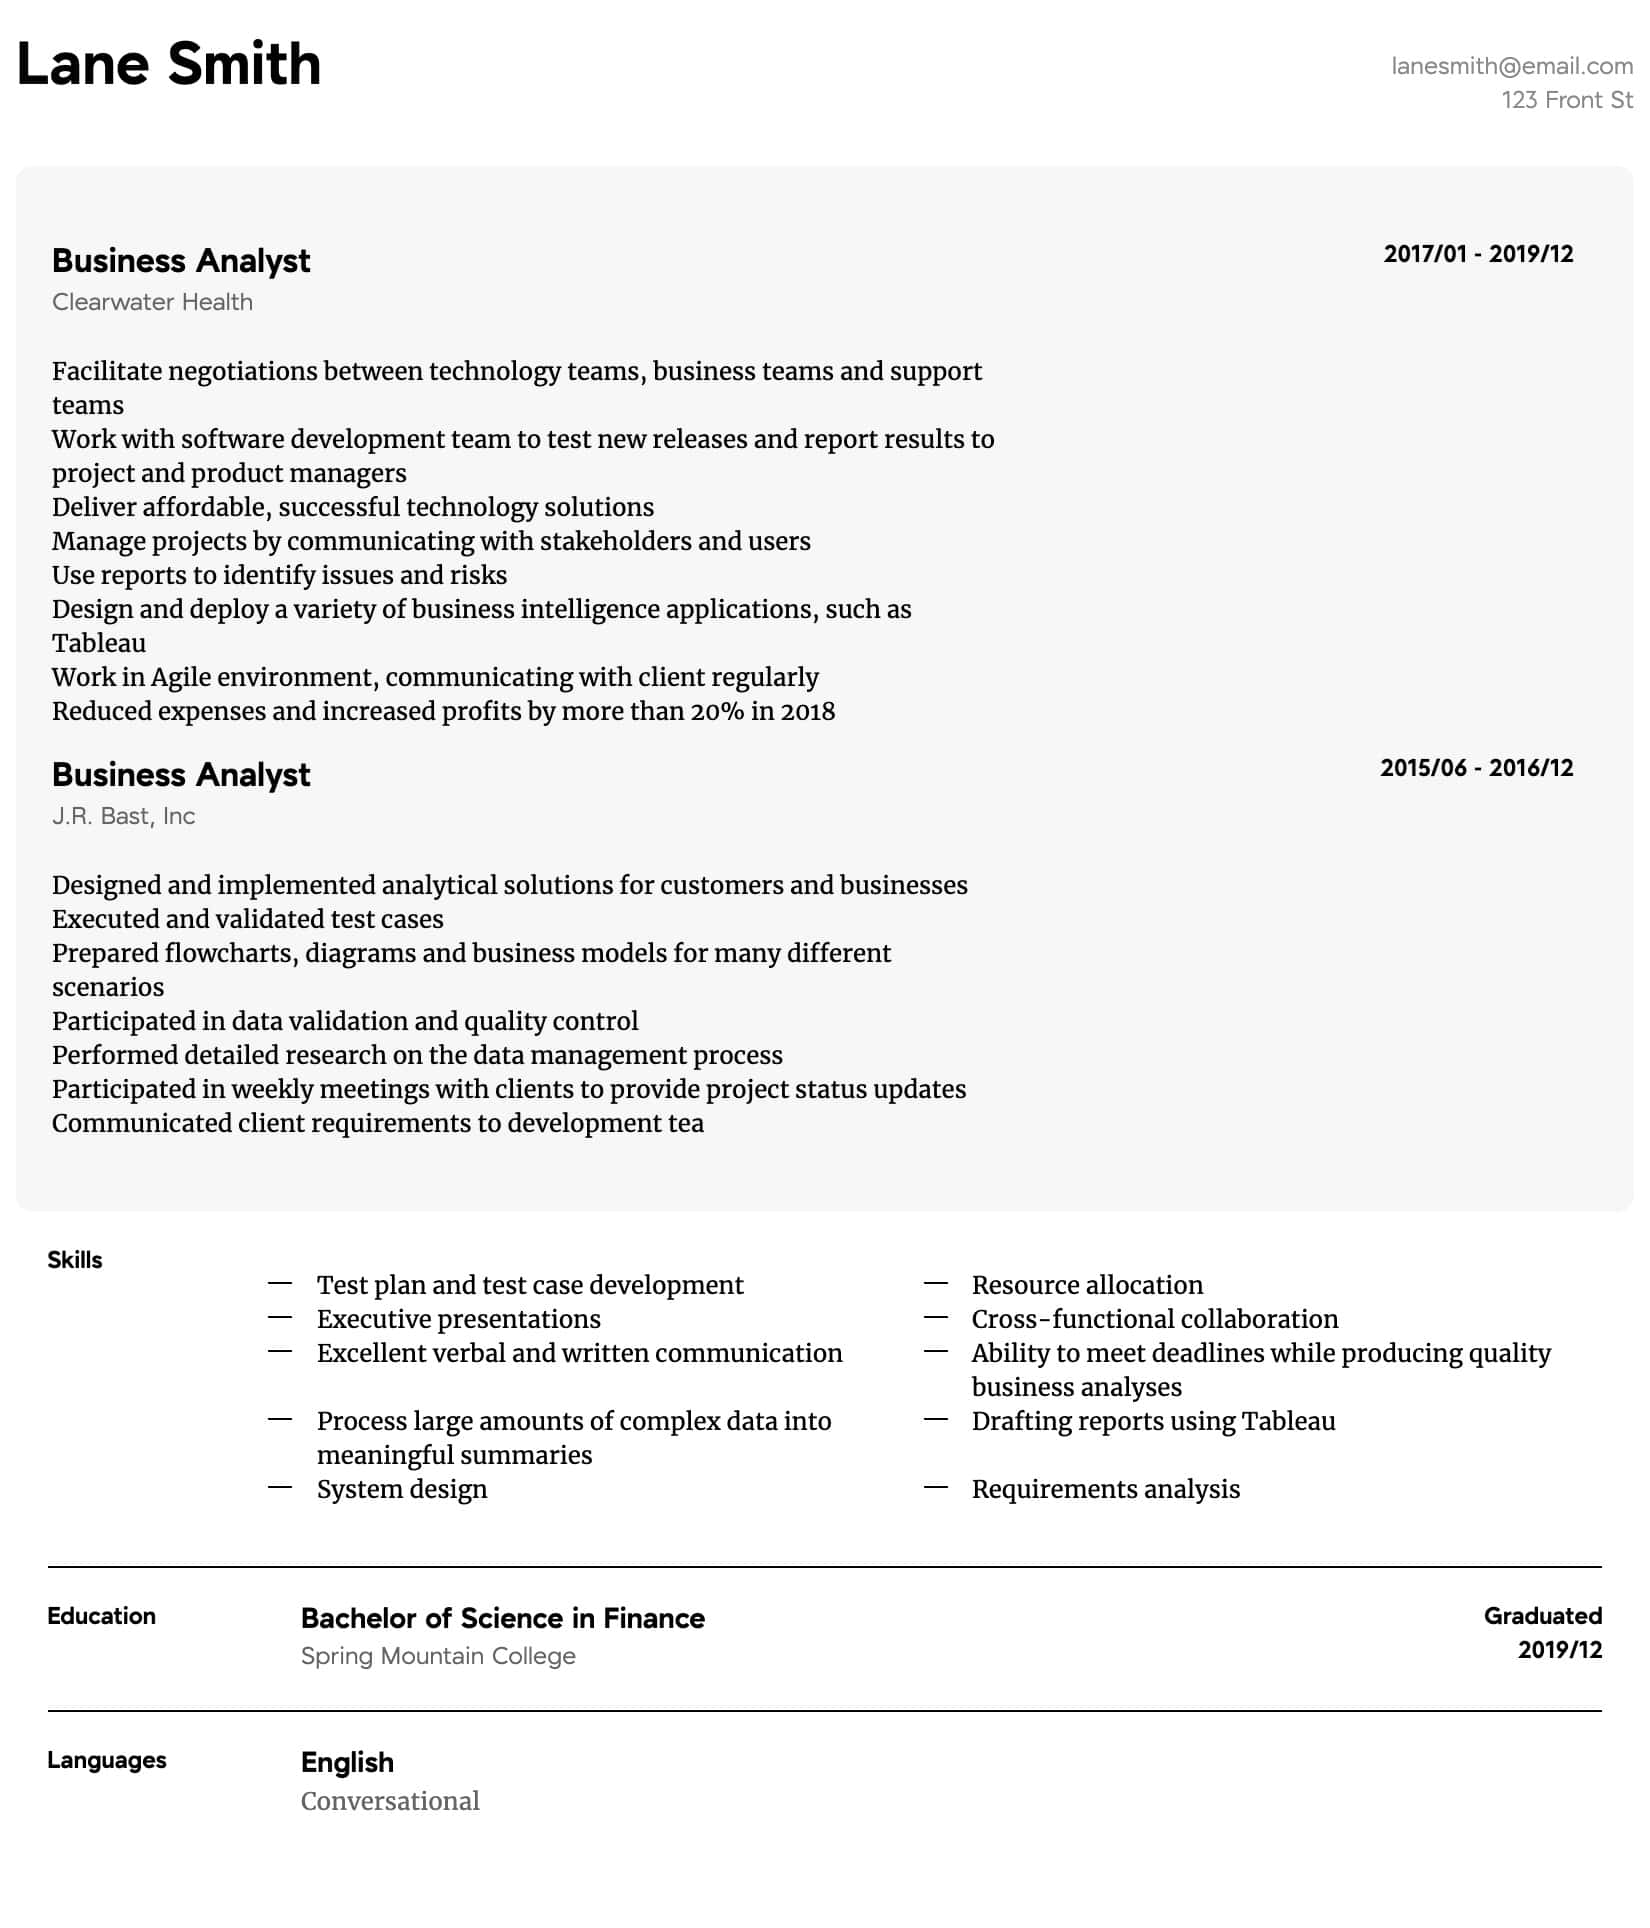 business analyst resume samples all experience levels builder intermediate general labor Resume Business Analyst Resume Builder